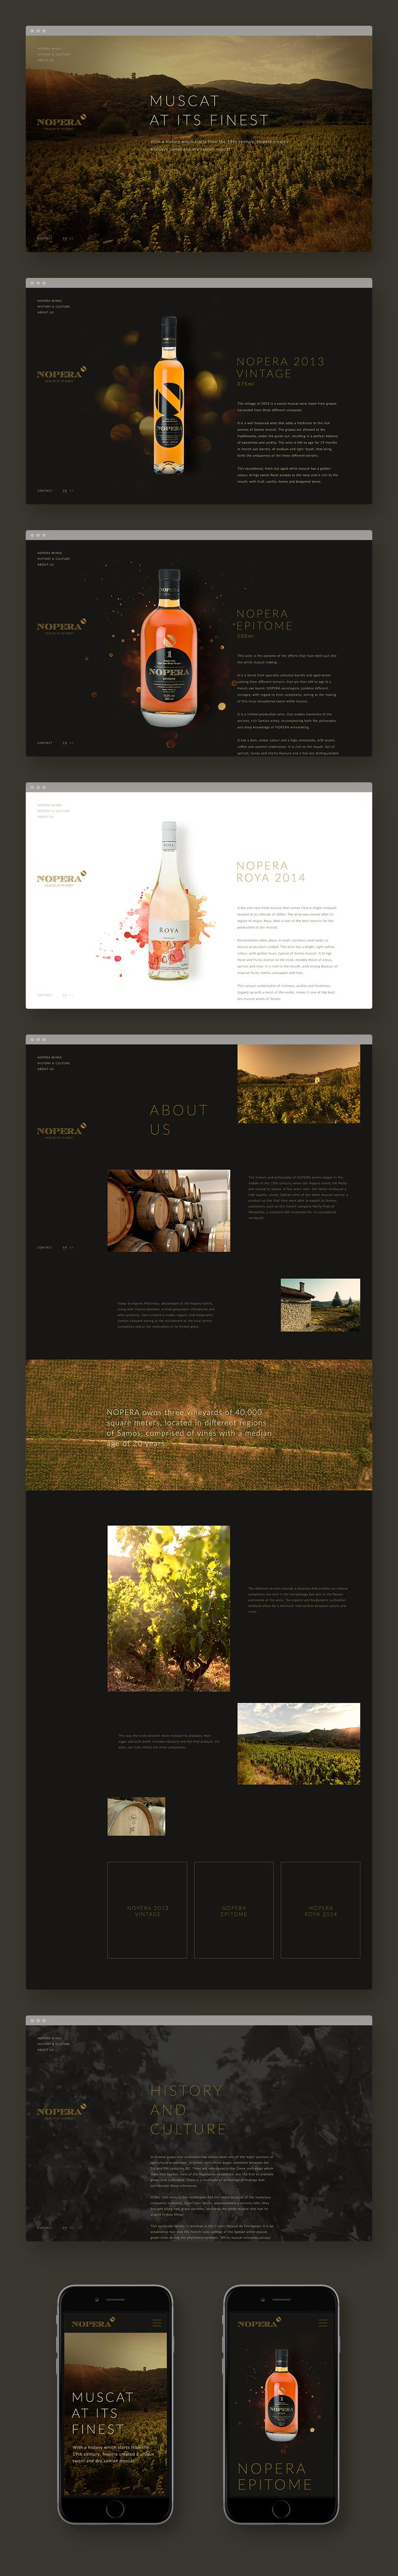 Nopera #wine is a fine muscat that has been produced in #Samos since the midst of 19th century.  The #website we created presents the history, the qualitative characteristics and the collection of Nopera wines, complementing with great success the goal to reach an international audience of consumers with a demand for exquisite taste.